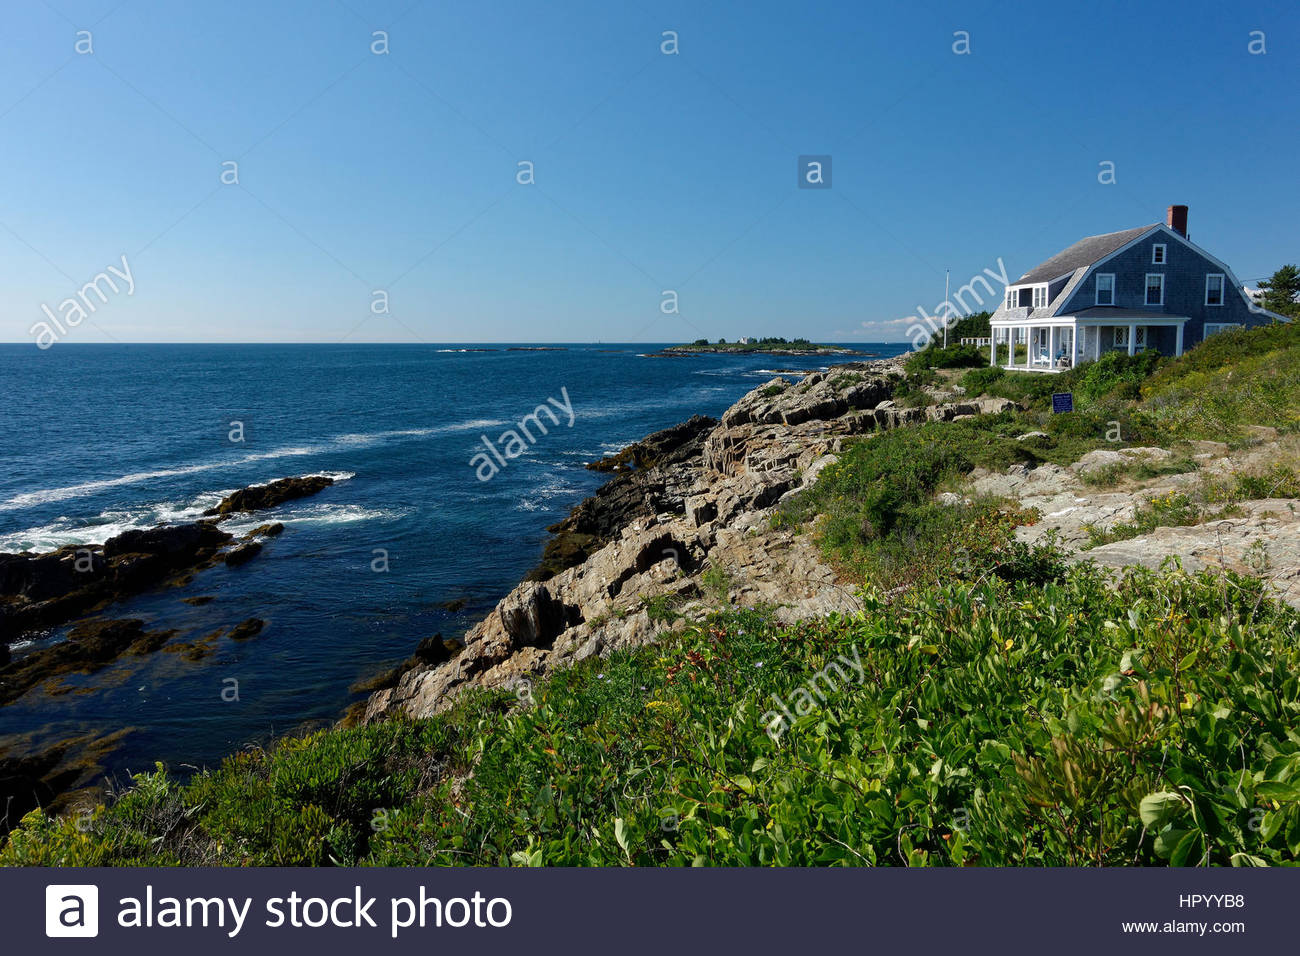 House on the Atlantic Ocean, Harpswell, Maine, USA - Stock Image